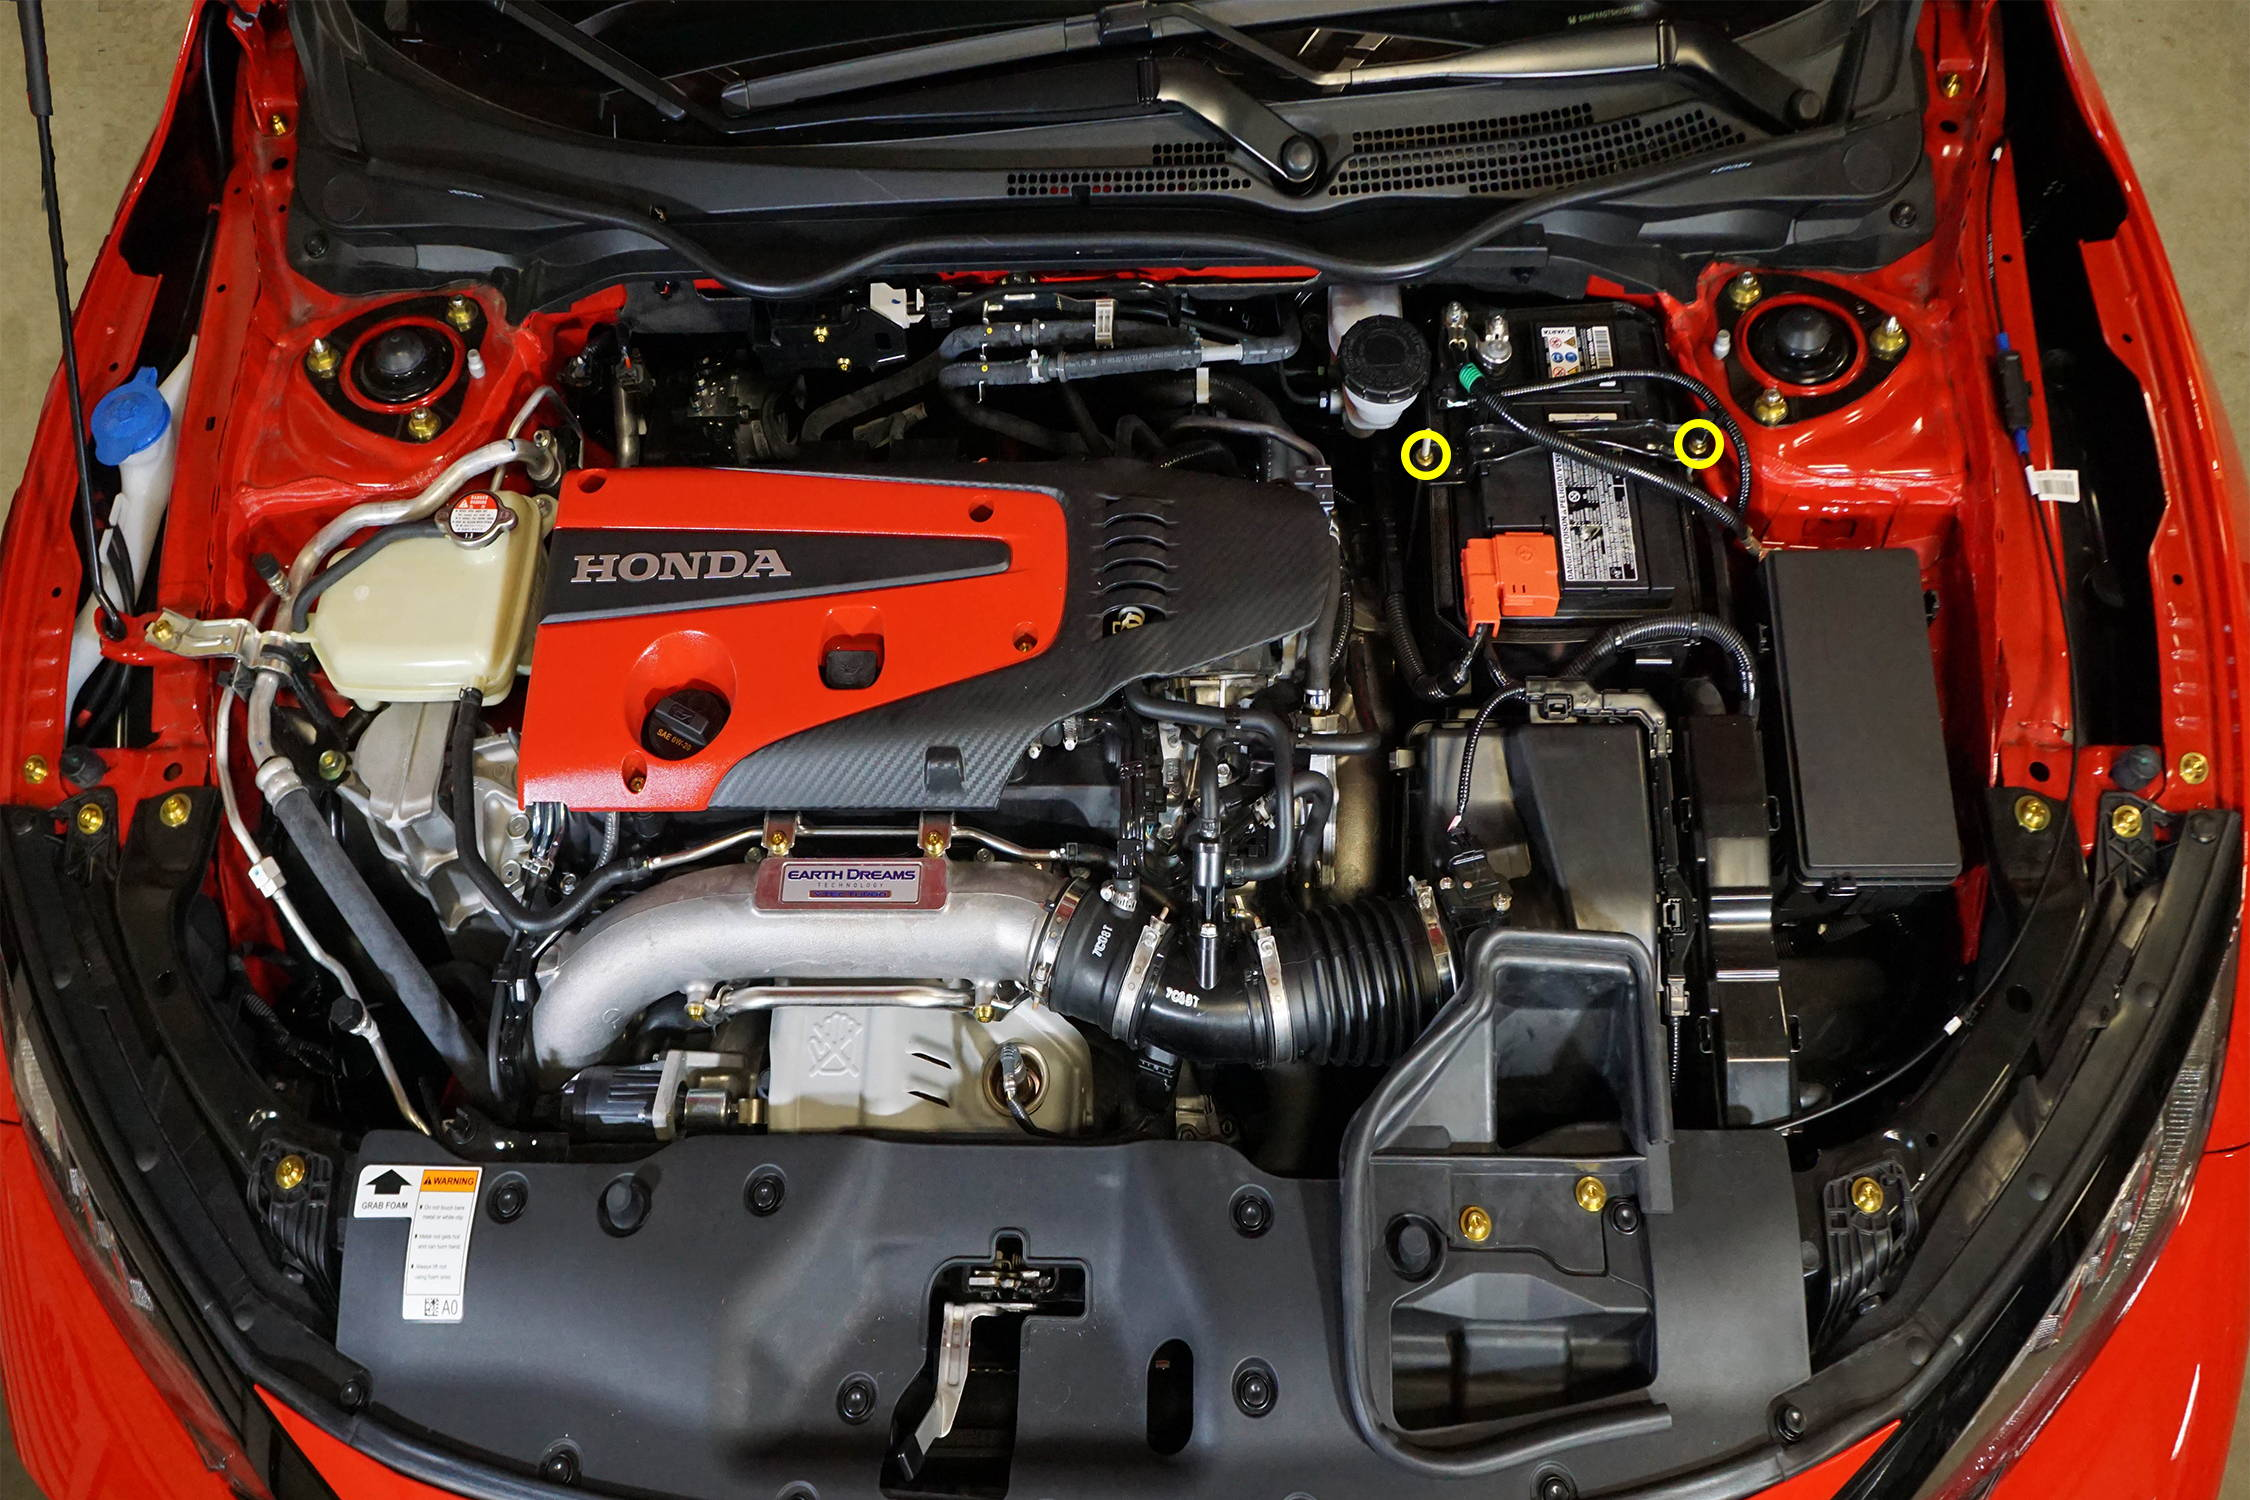 All Of Our Engine Bay Kits Come With Detailed Instructions Making Installation Quick And Easy